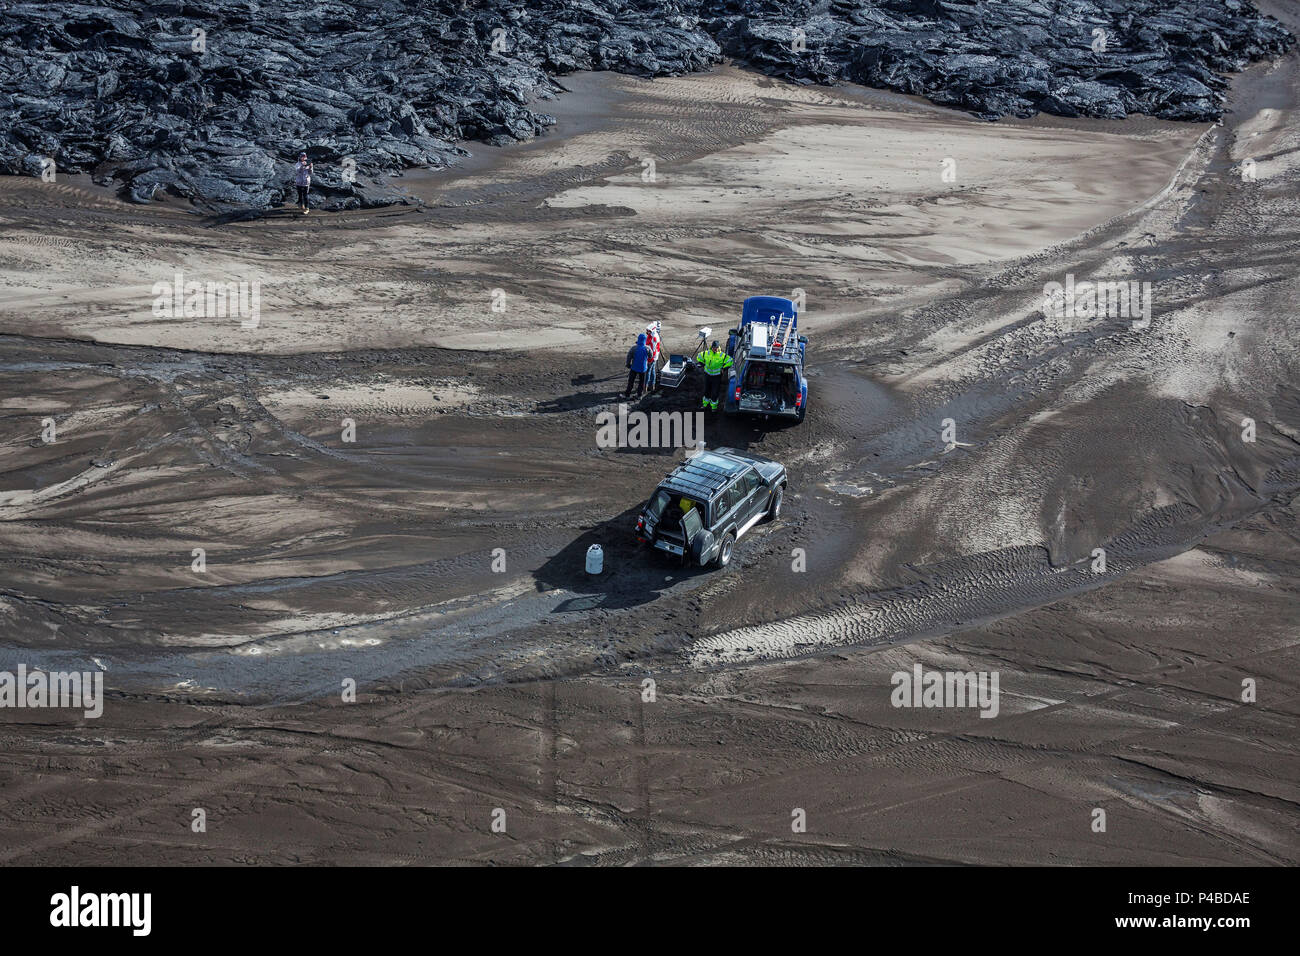 Aerial view of scientists and their jeeps by the lava flows. August 29, 2014 a fissure eruption started in Holuhraun at the northern end of a magma intrusion, which had moved progressively north, from the Bardarbunga volcano. Picture Date: September 3, 2014 - Stock Image